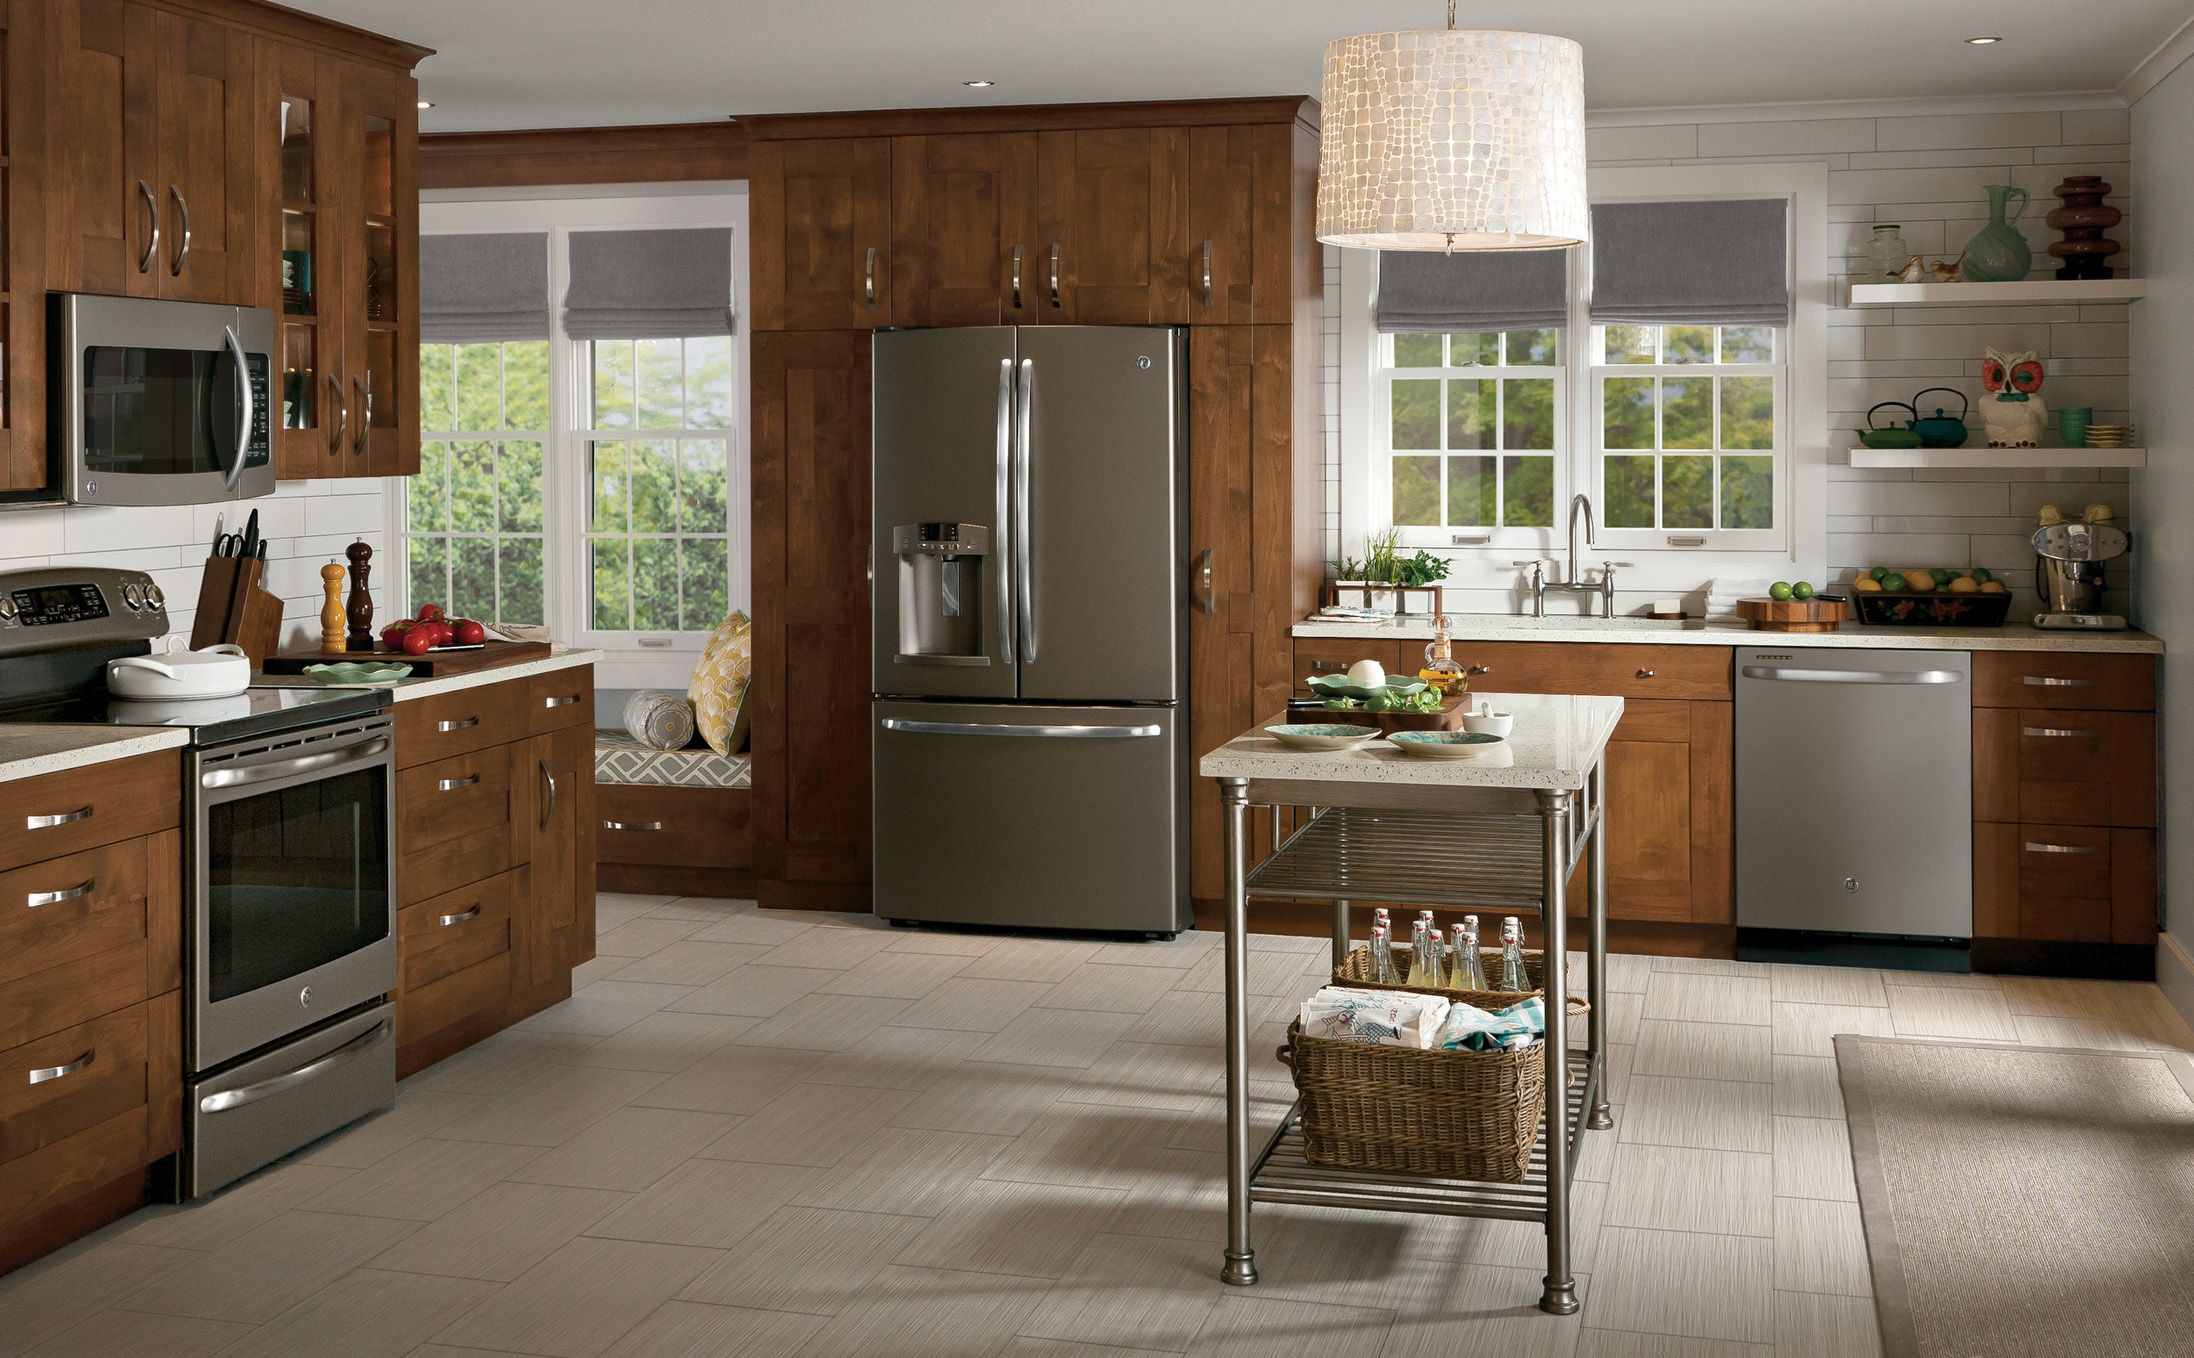 slate country kitchen photo design ge appliances kitchen ideas slate country kitchen photo design ge appliances